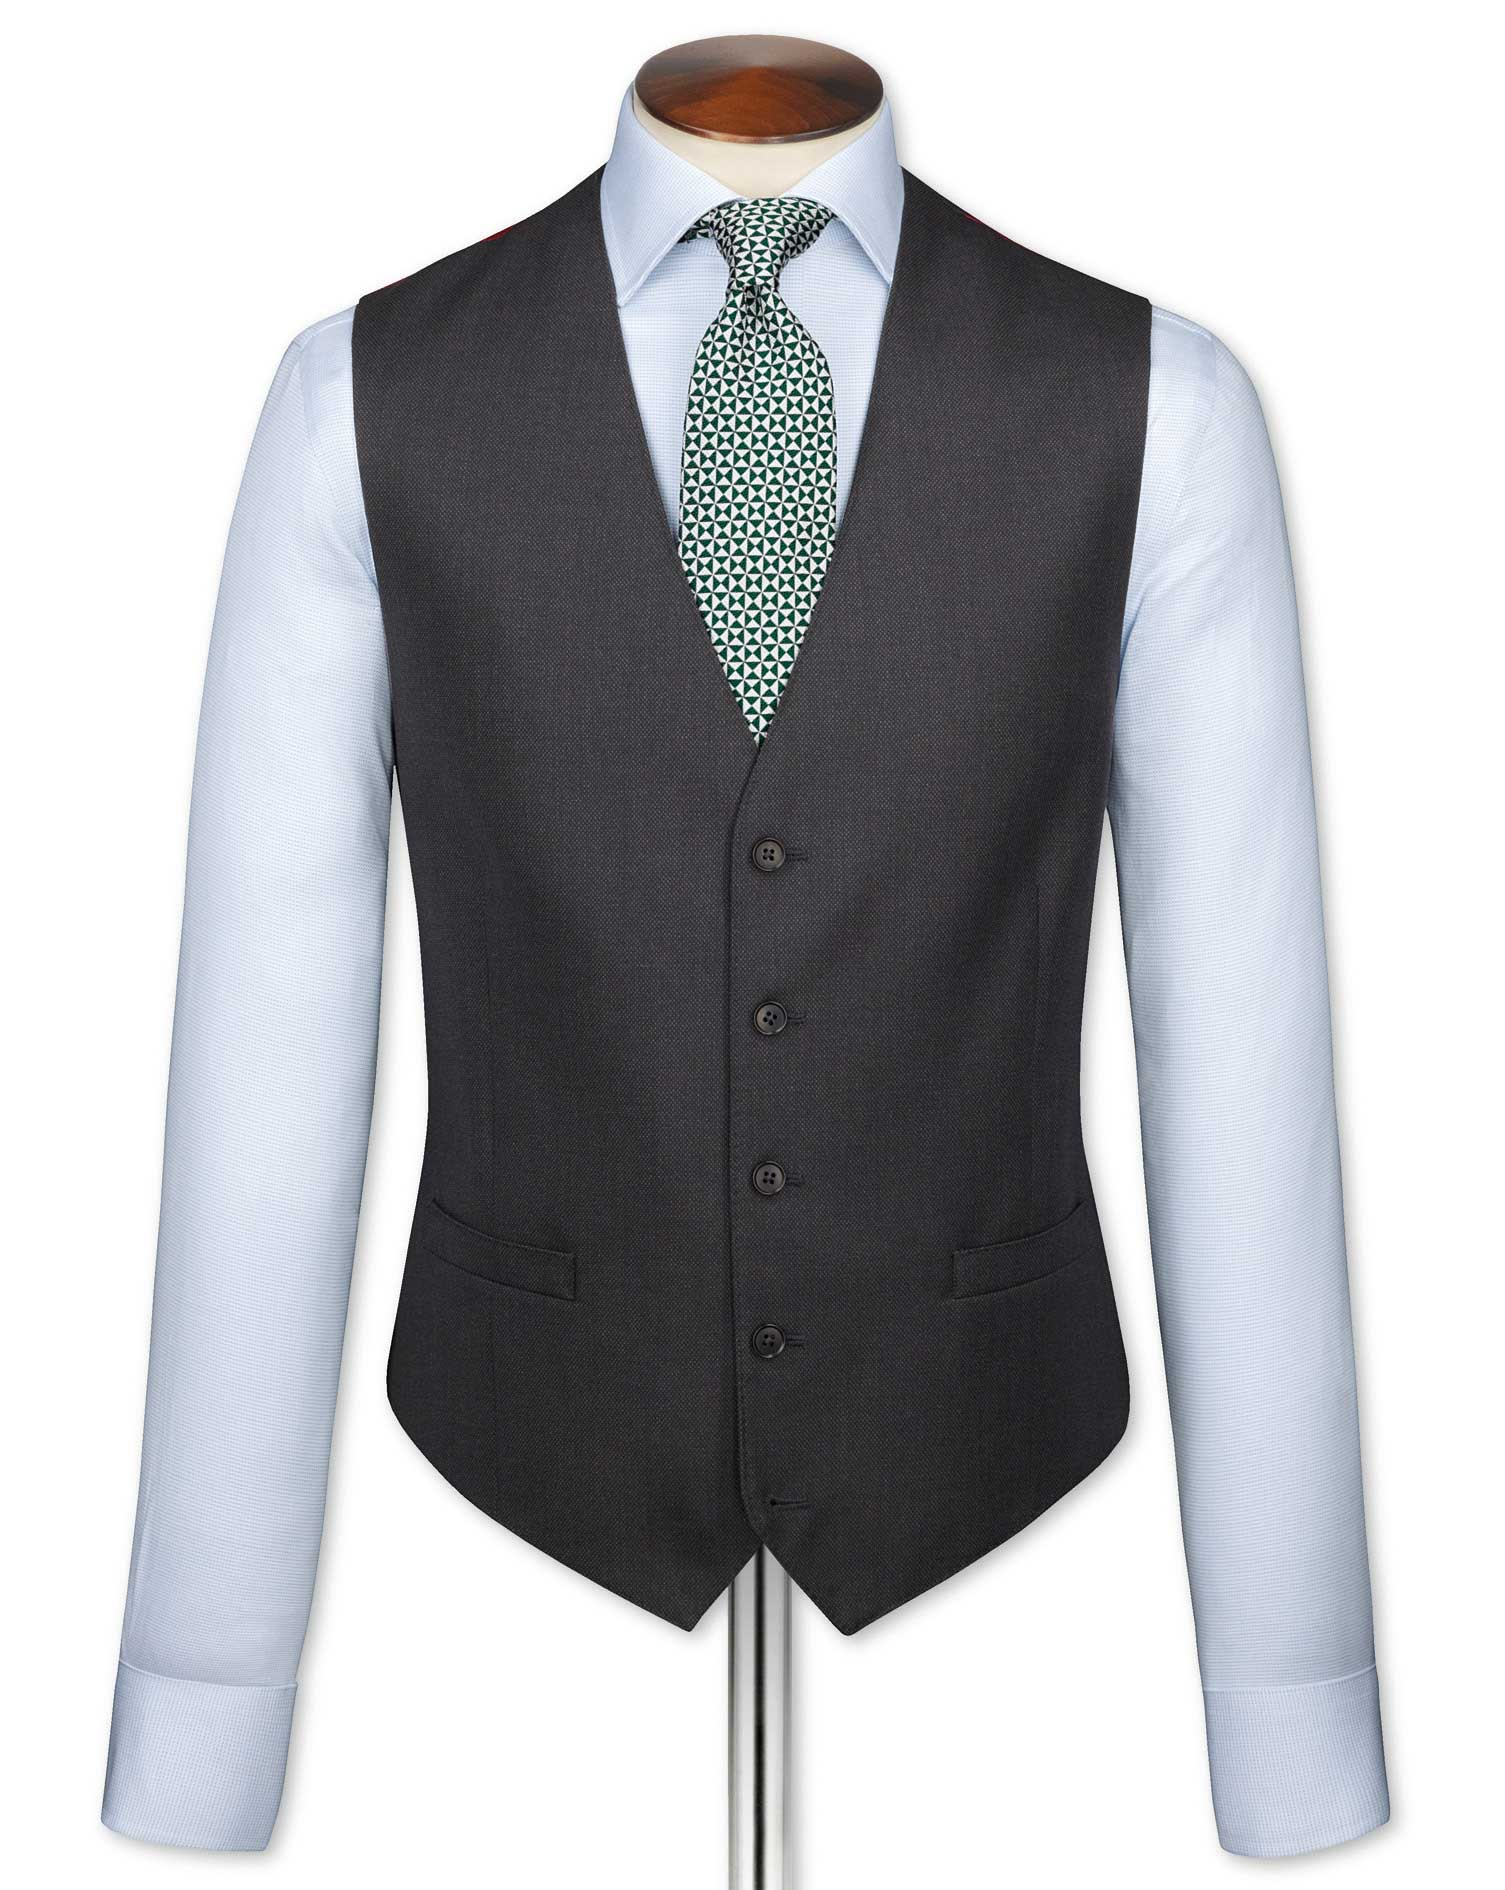 Charcoal Adjustable Fit Birdseye Travel Suit Wool Waistcoat Size w40 by Charles Tyrwhitt